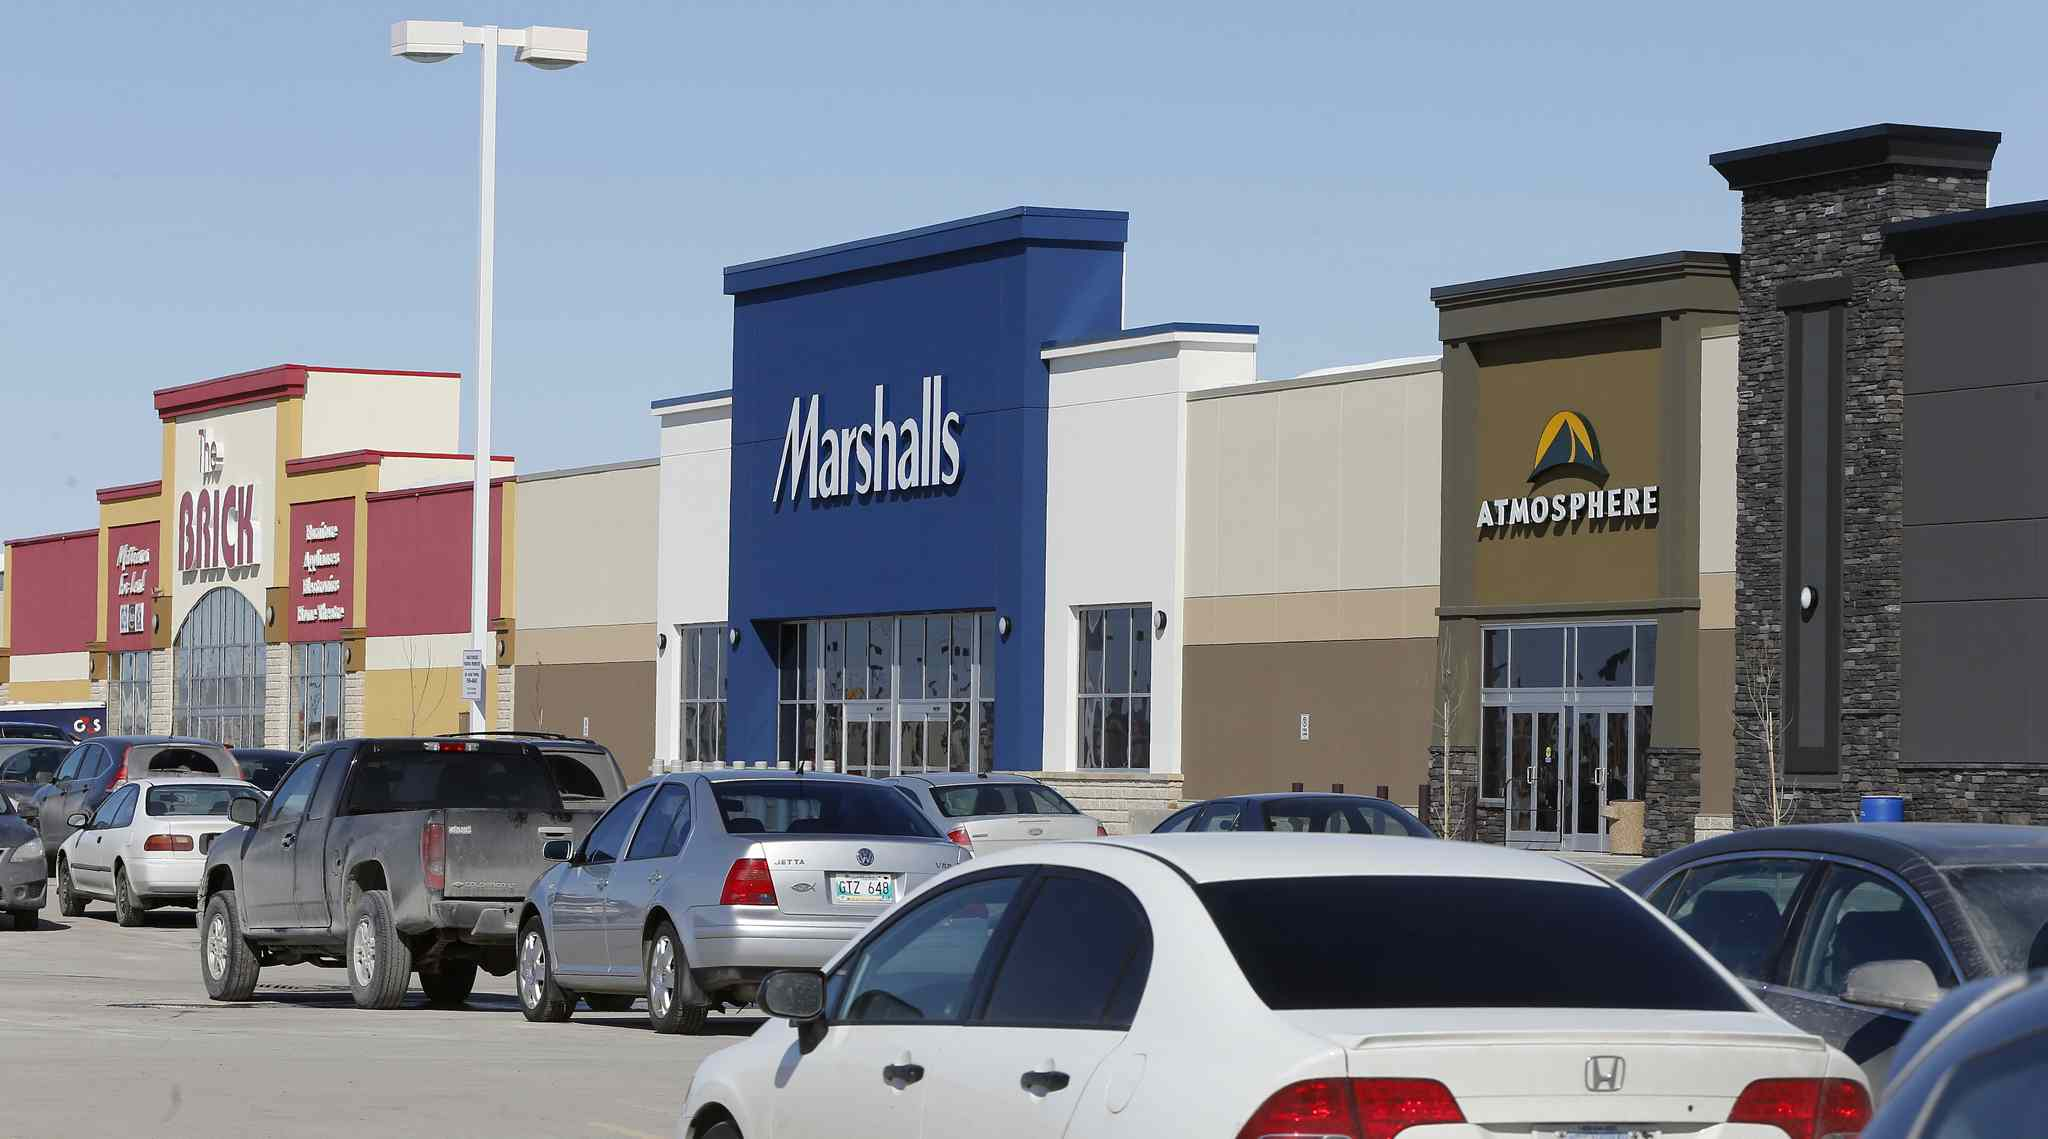 The 28,100-square-foot Marshalls store in Linden Ridge Shopping Centre is scheduled to open March 27.